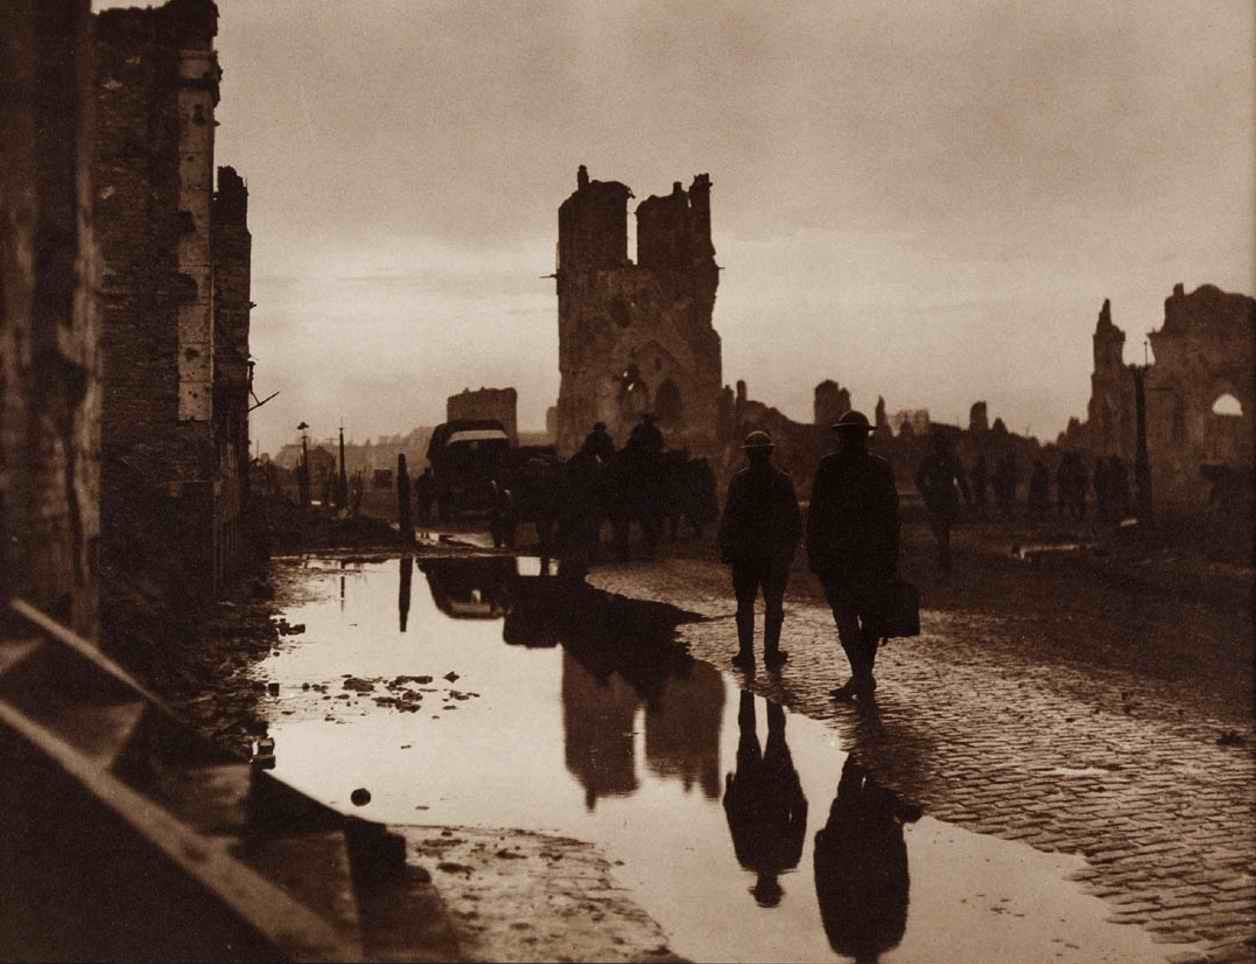 Evening by the Cloth Hall, Ypres